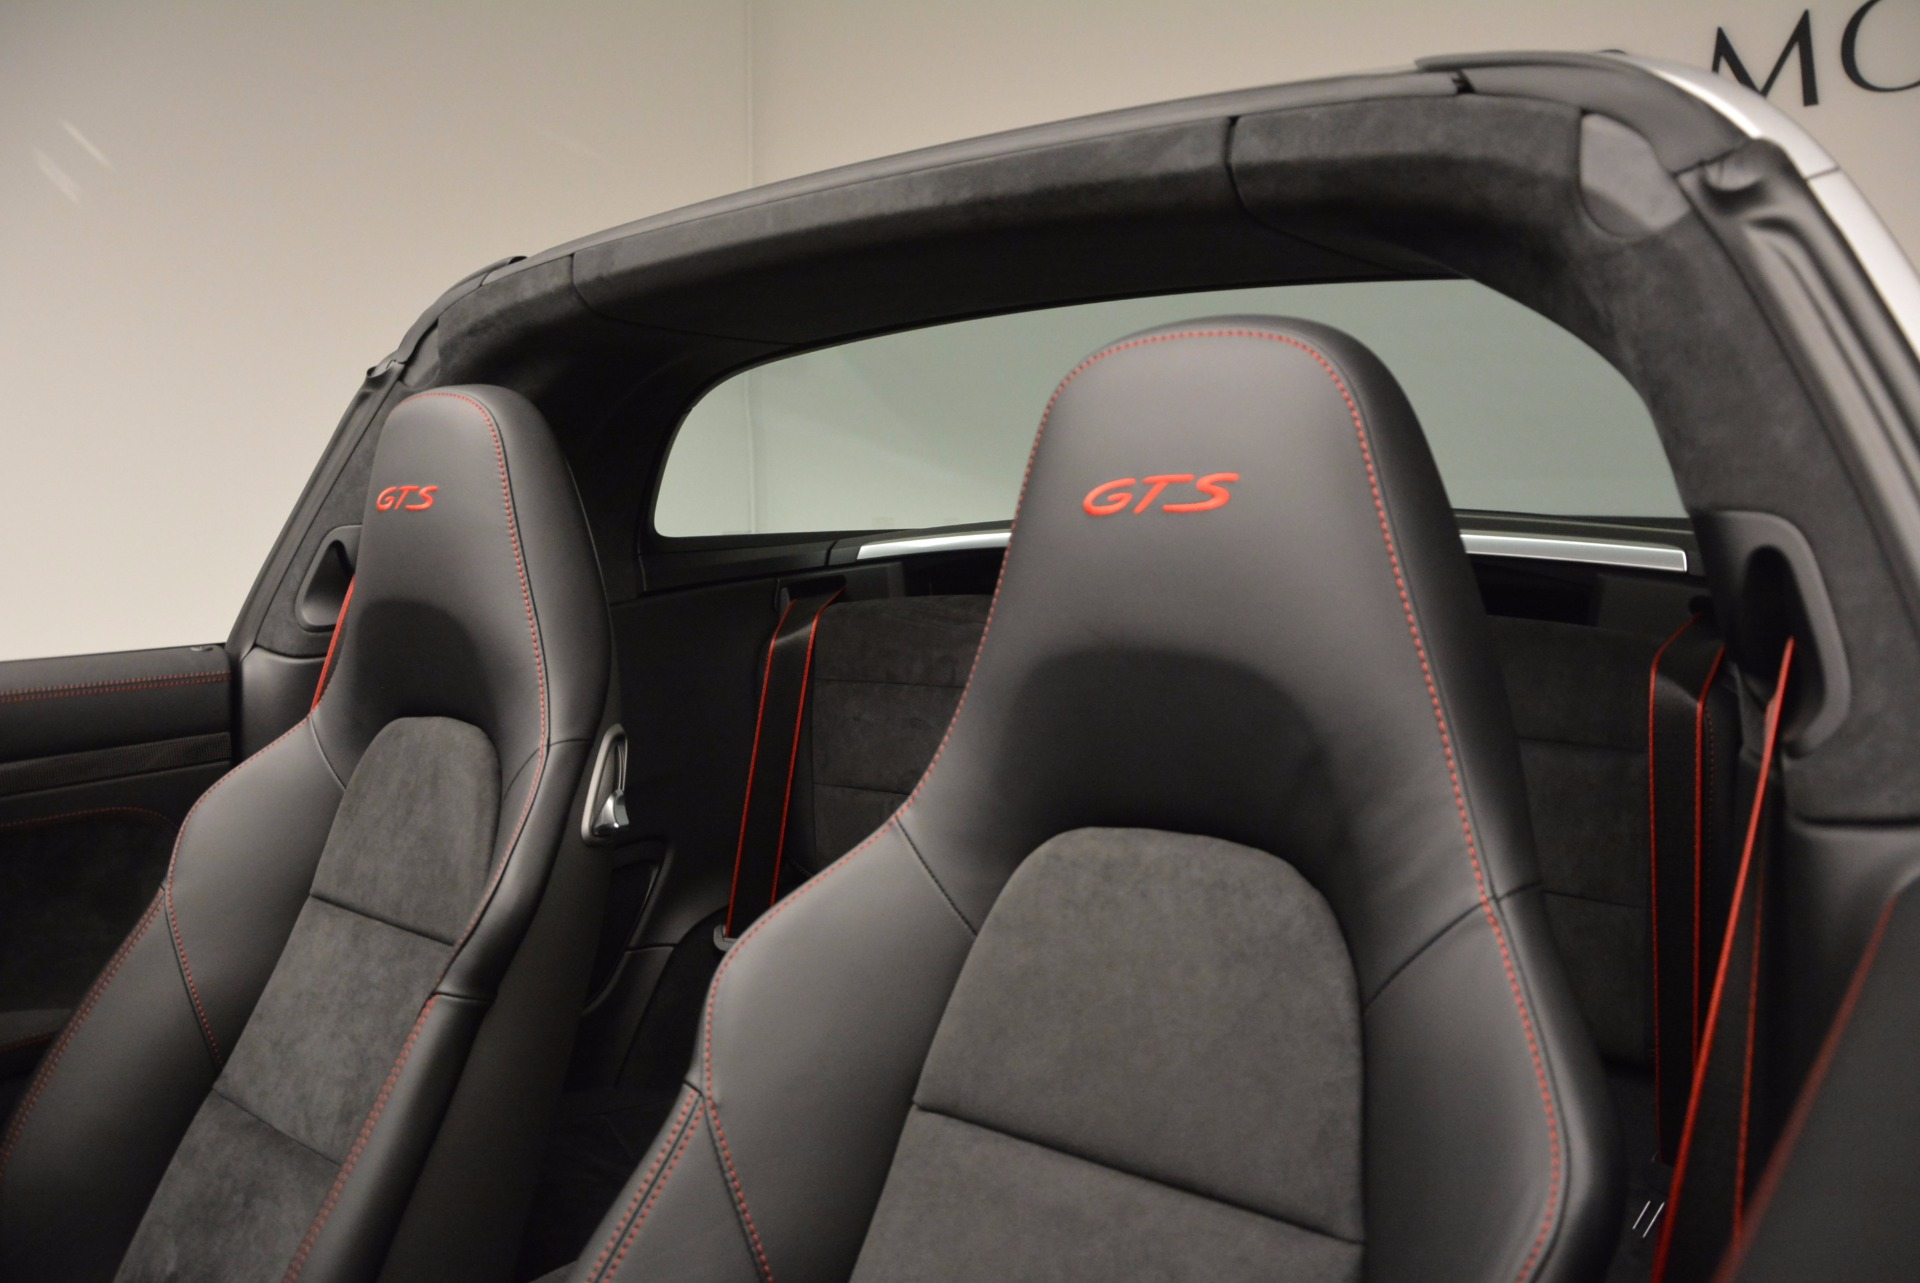 Used 2016 Porsche 911 Targa 4 GTS For Sale In Greenwich, CT 799_p26